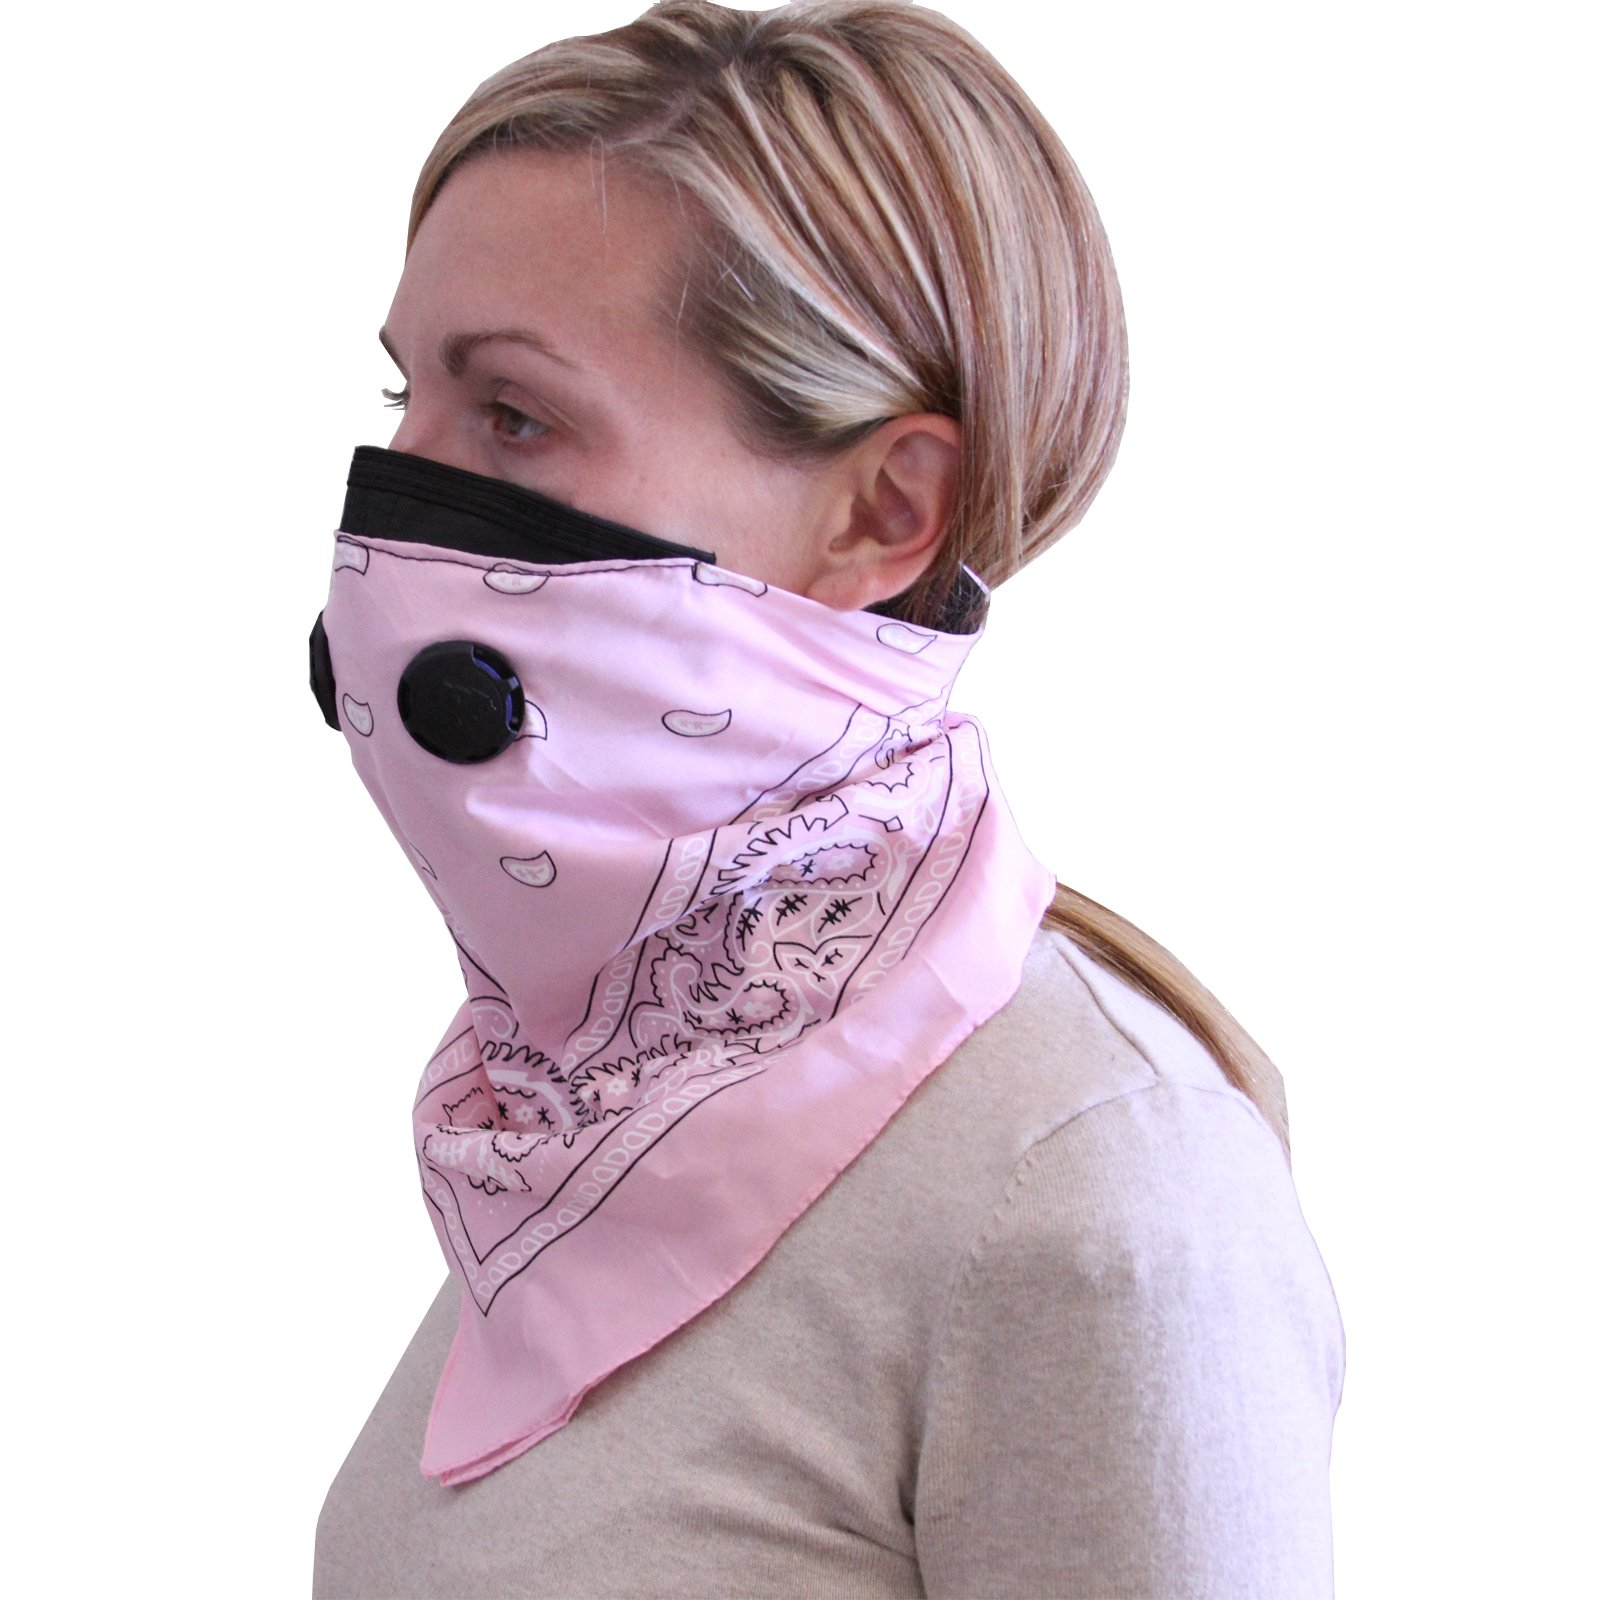 Bandana Style Dust Mask Pnk by ATV Tek